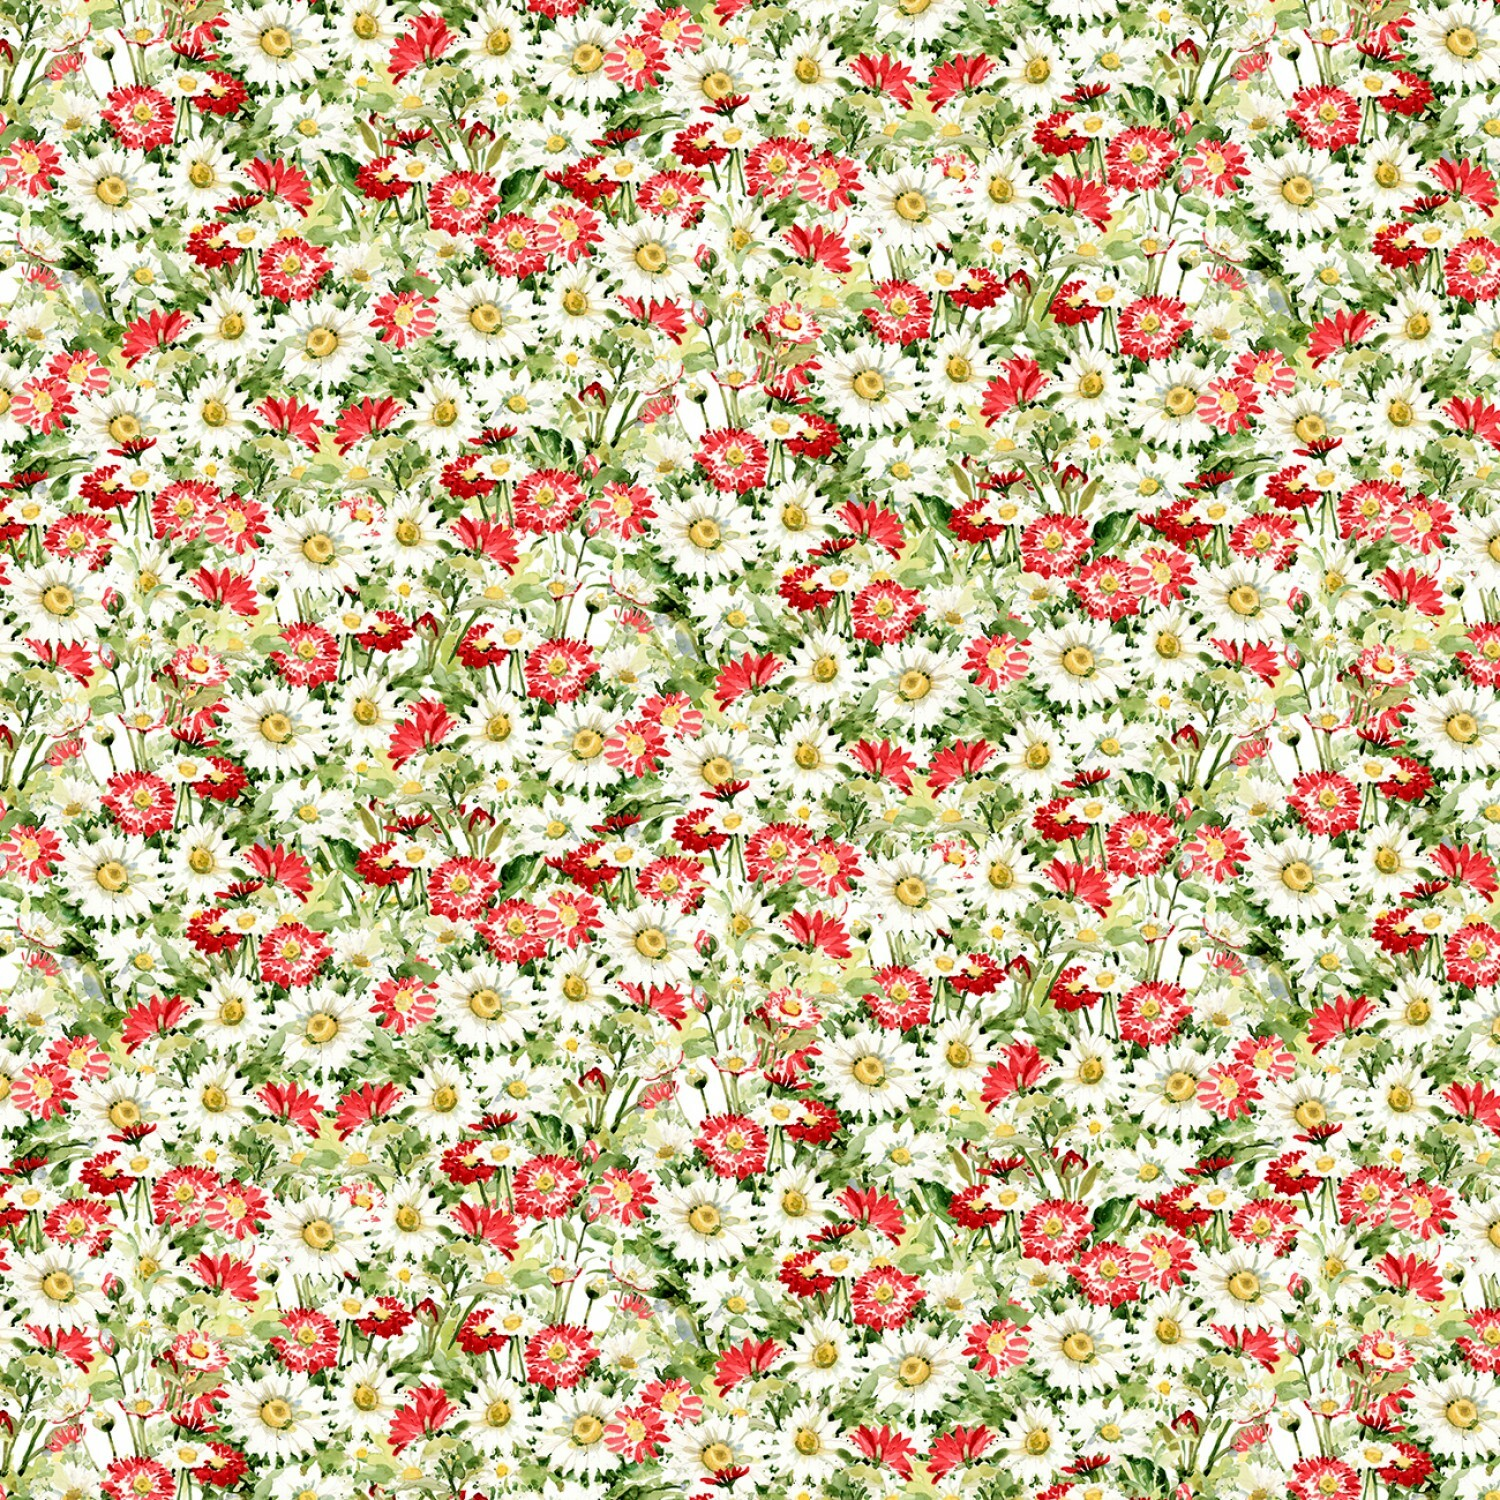 Meadow Bloom - Red Packed Daisies - 1/2m cut 57235